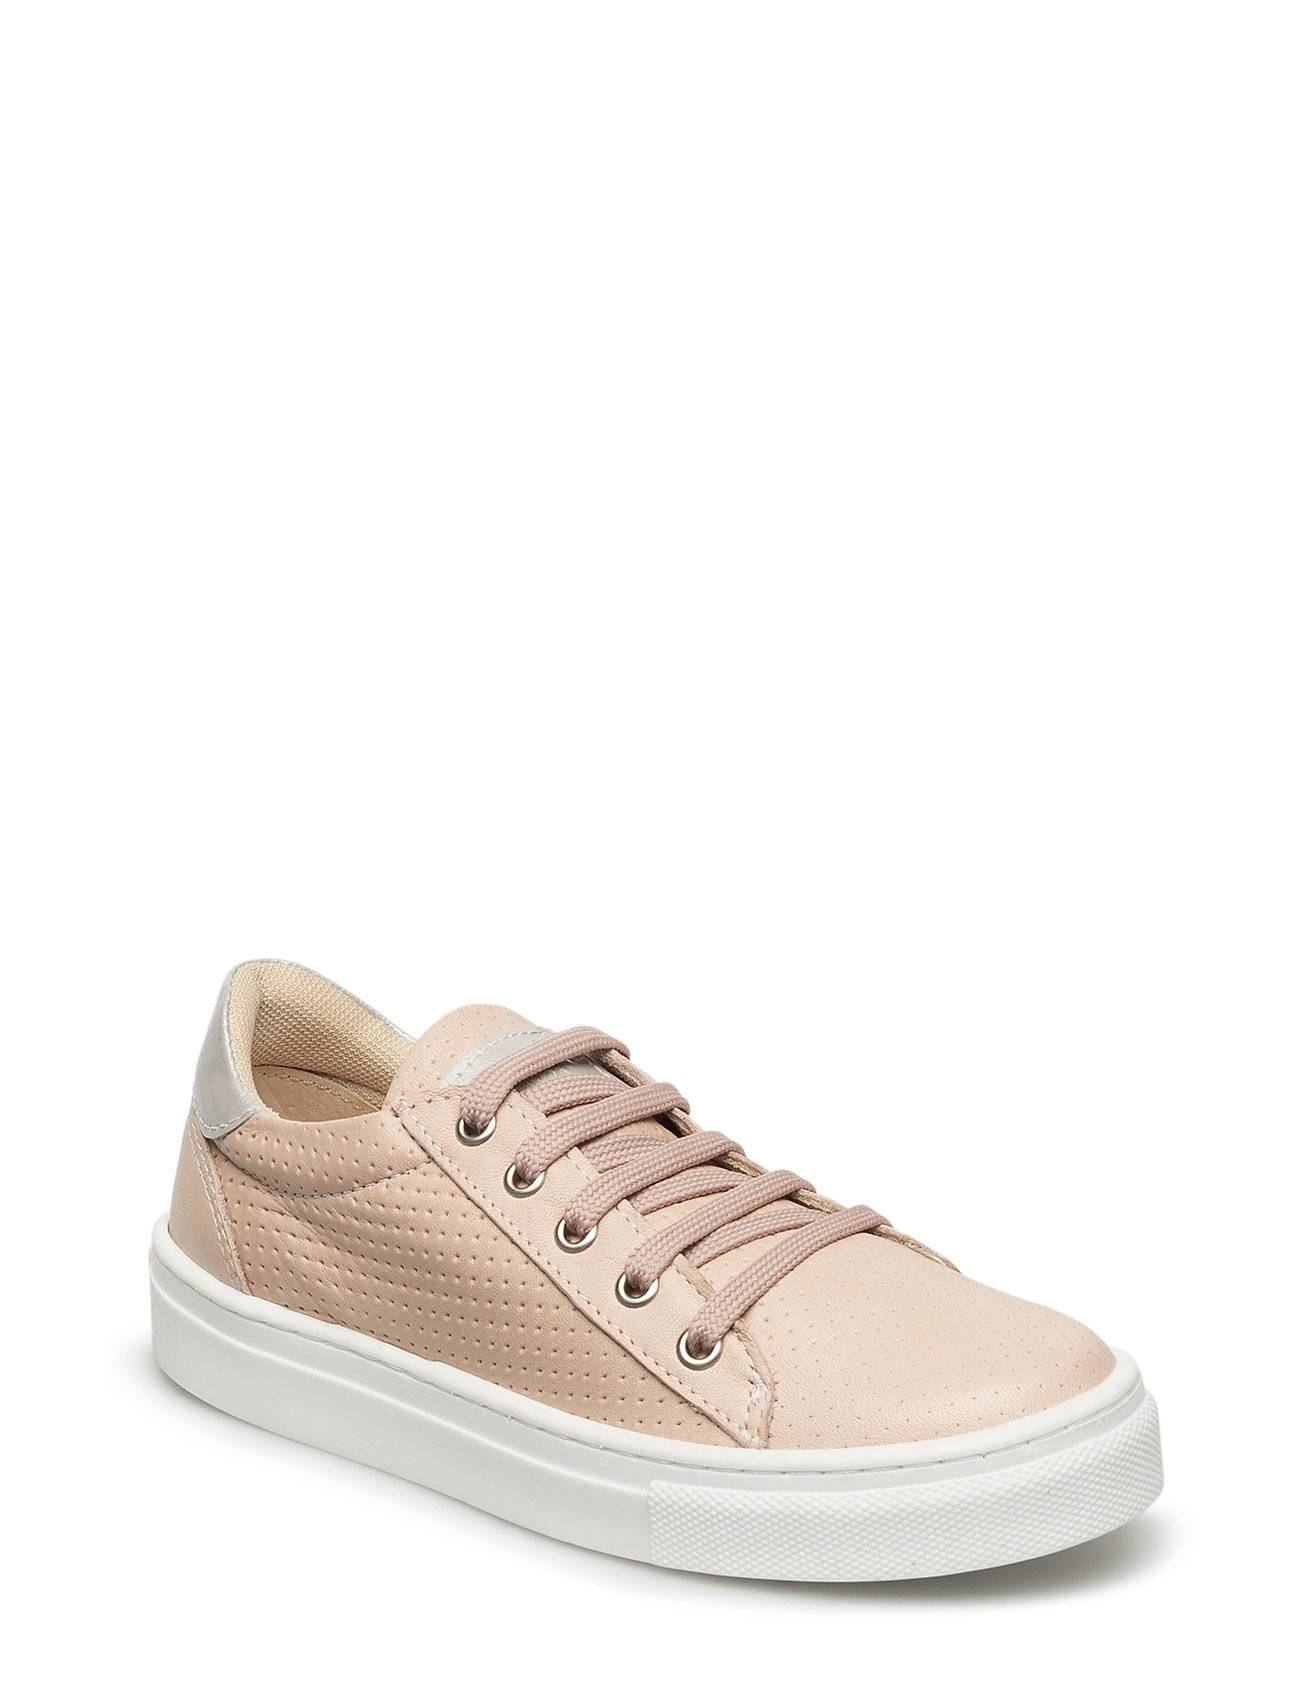 Move by Melton Unisex Classic Sneaker